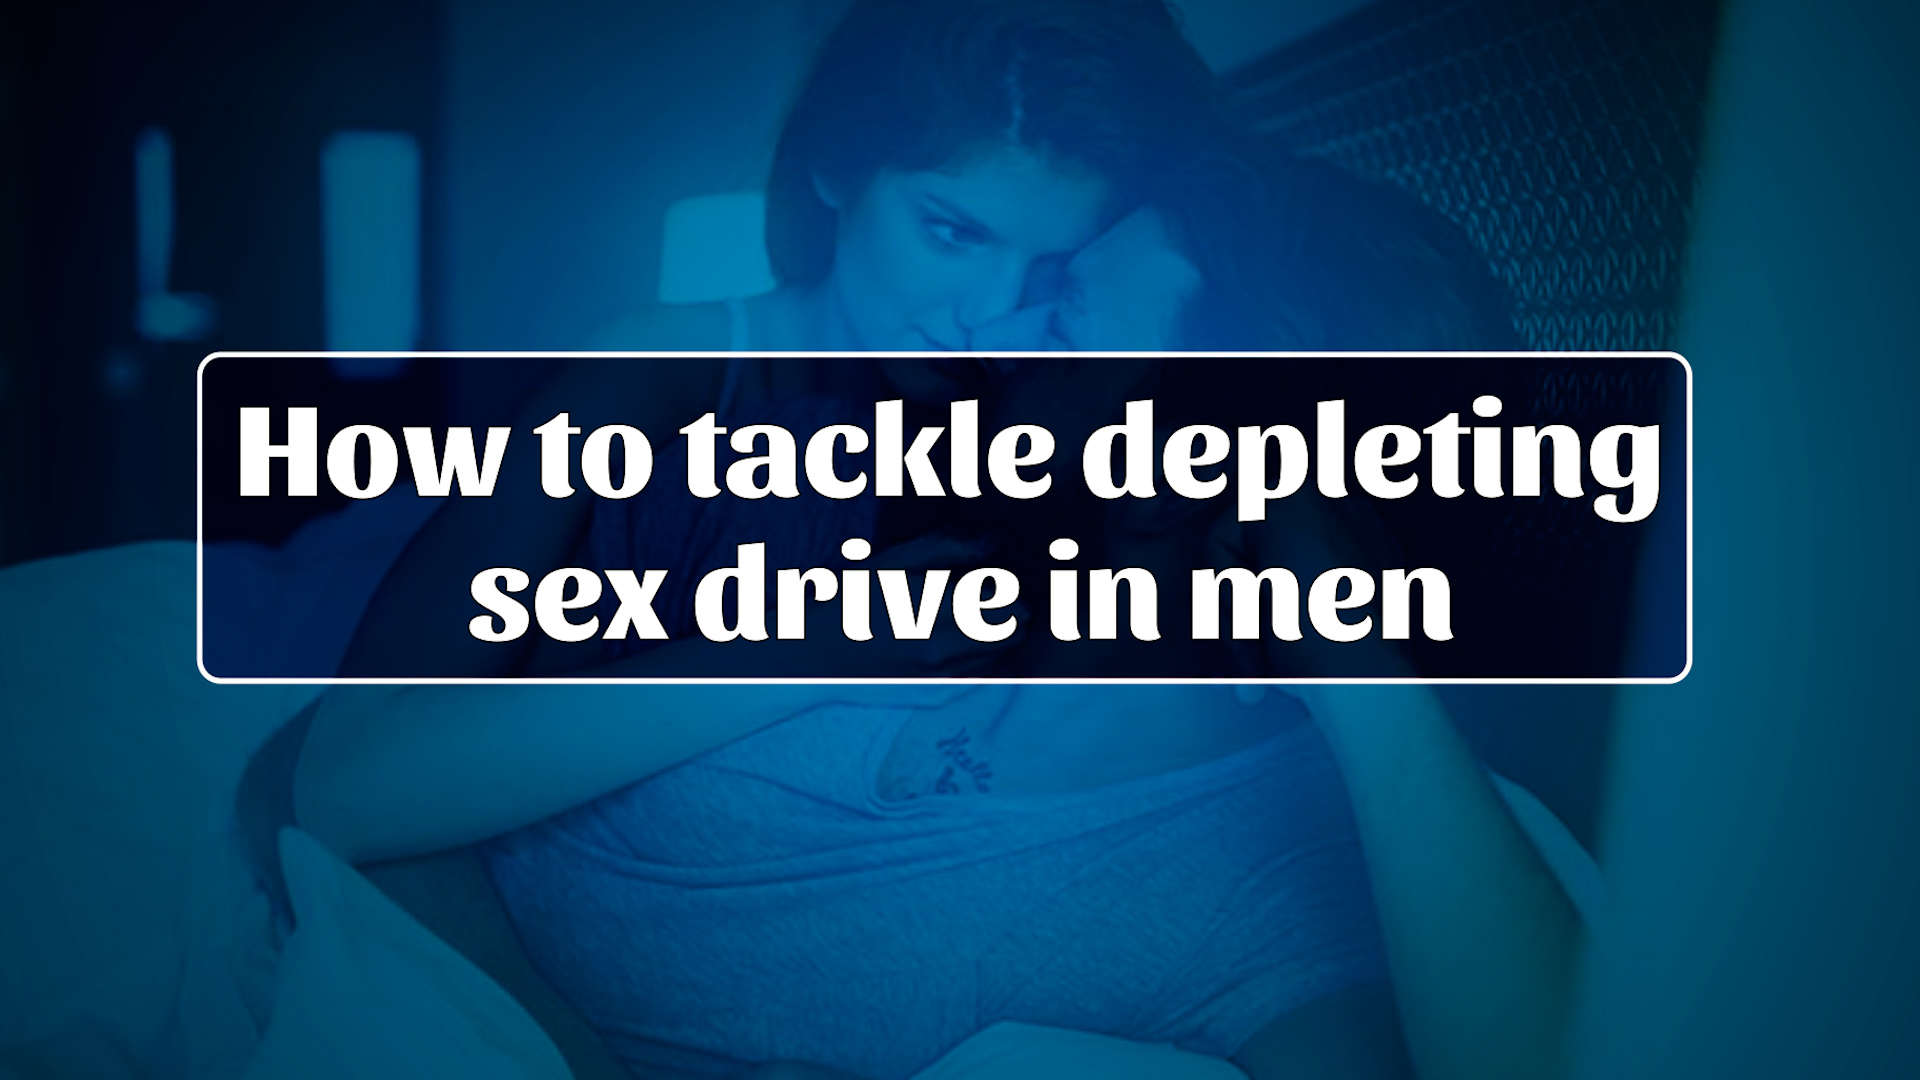 how-to-tackle-depleting-sex-drive-in-men